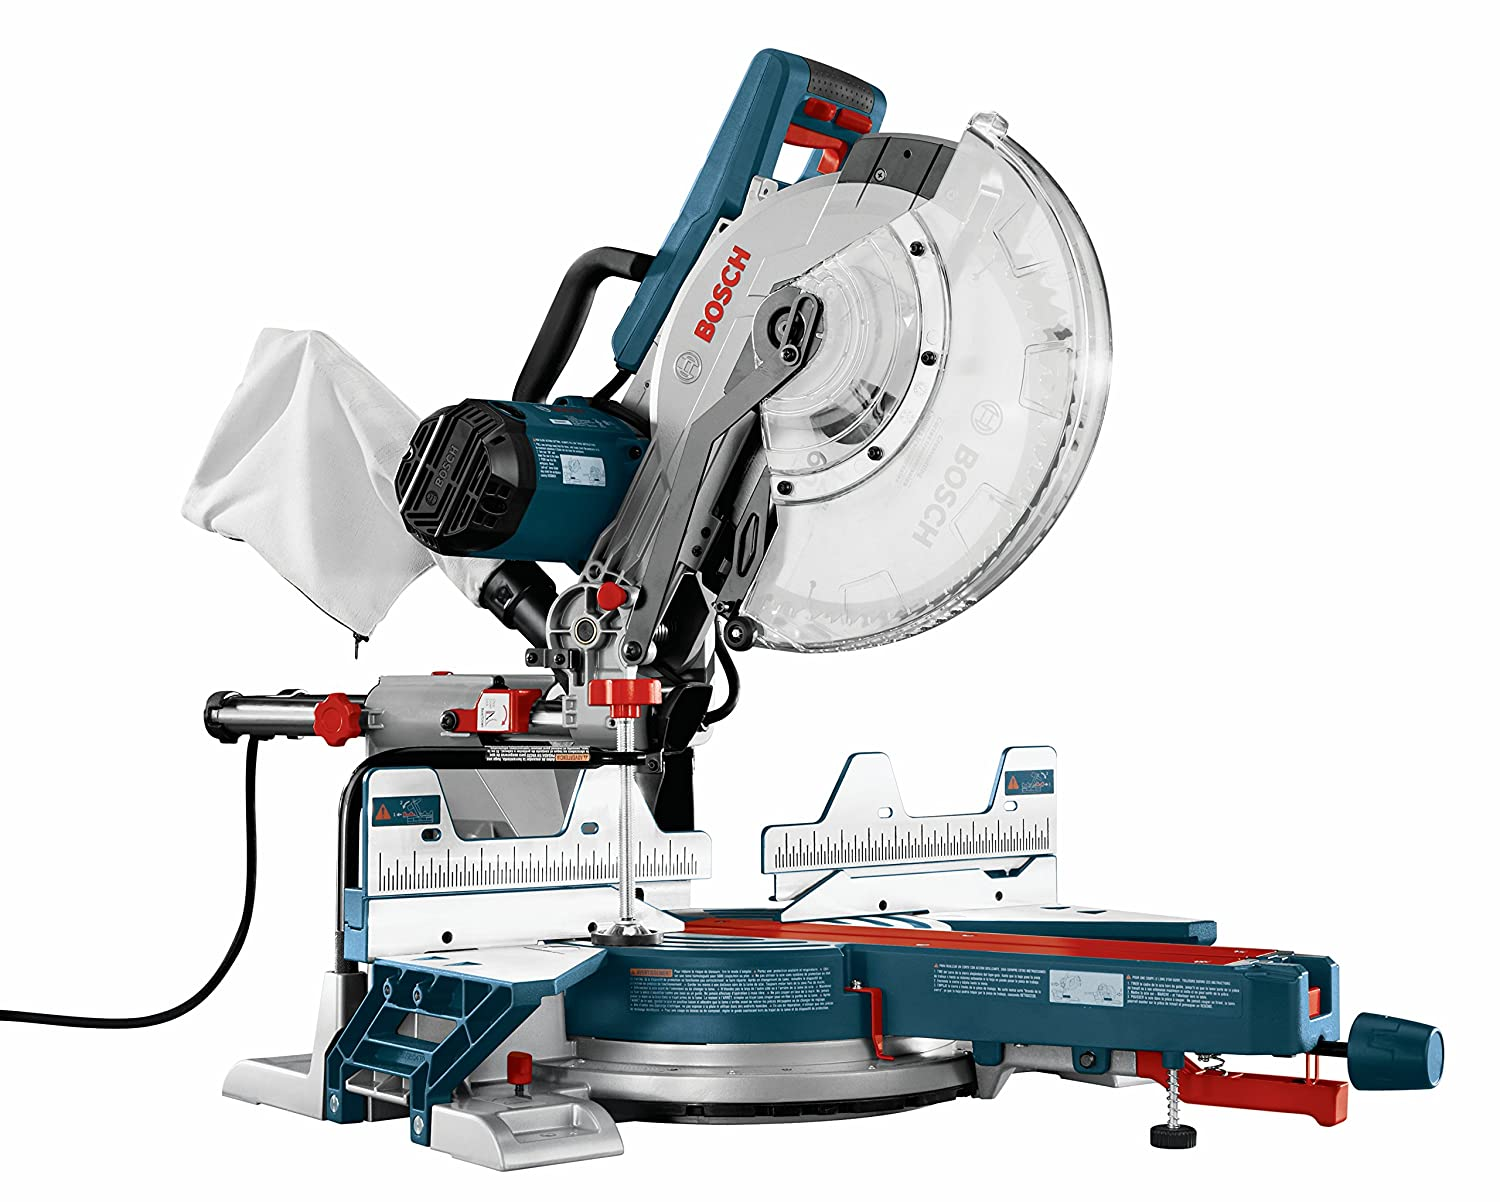 Bosch cm12sd db glide miter saw 12 inch amazon greentooth Image collections